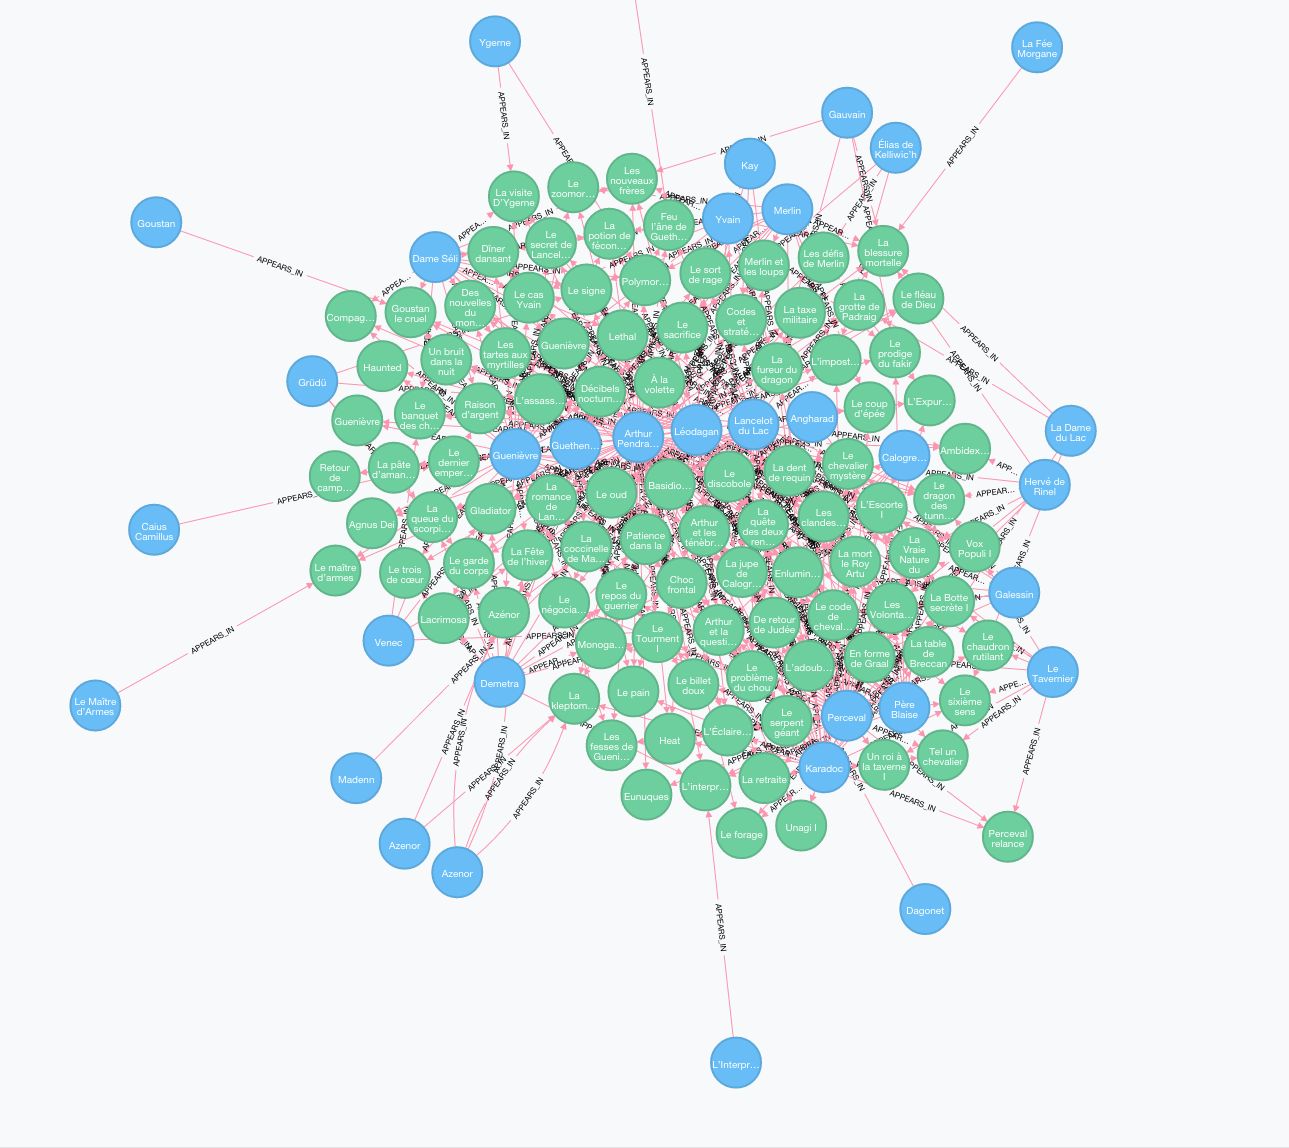 Playing with neo4j and &quot&#x3B;Kaamelott&quot&#x3B; (french TV series)